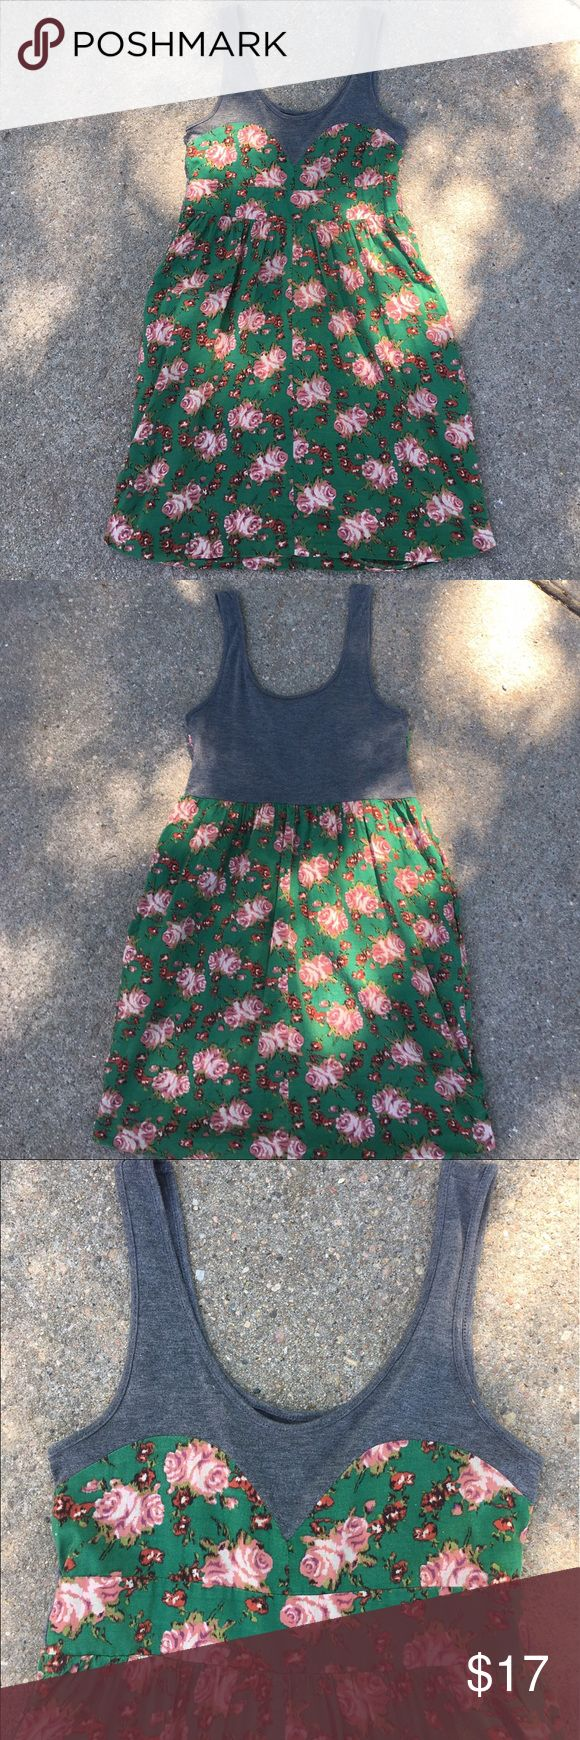 "Super Cute Dress with Flowers Urban Behavior tank dress-the top is dark gray-bottom is green with different colored pink-ish flowers-has pockets😊-approx. 28"" wide in the chest area but does stretch a bit- length is approx. 32"".                                                                 🚭Smoke Free Home Urban Behavior  Dresses Mini"